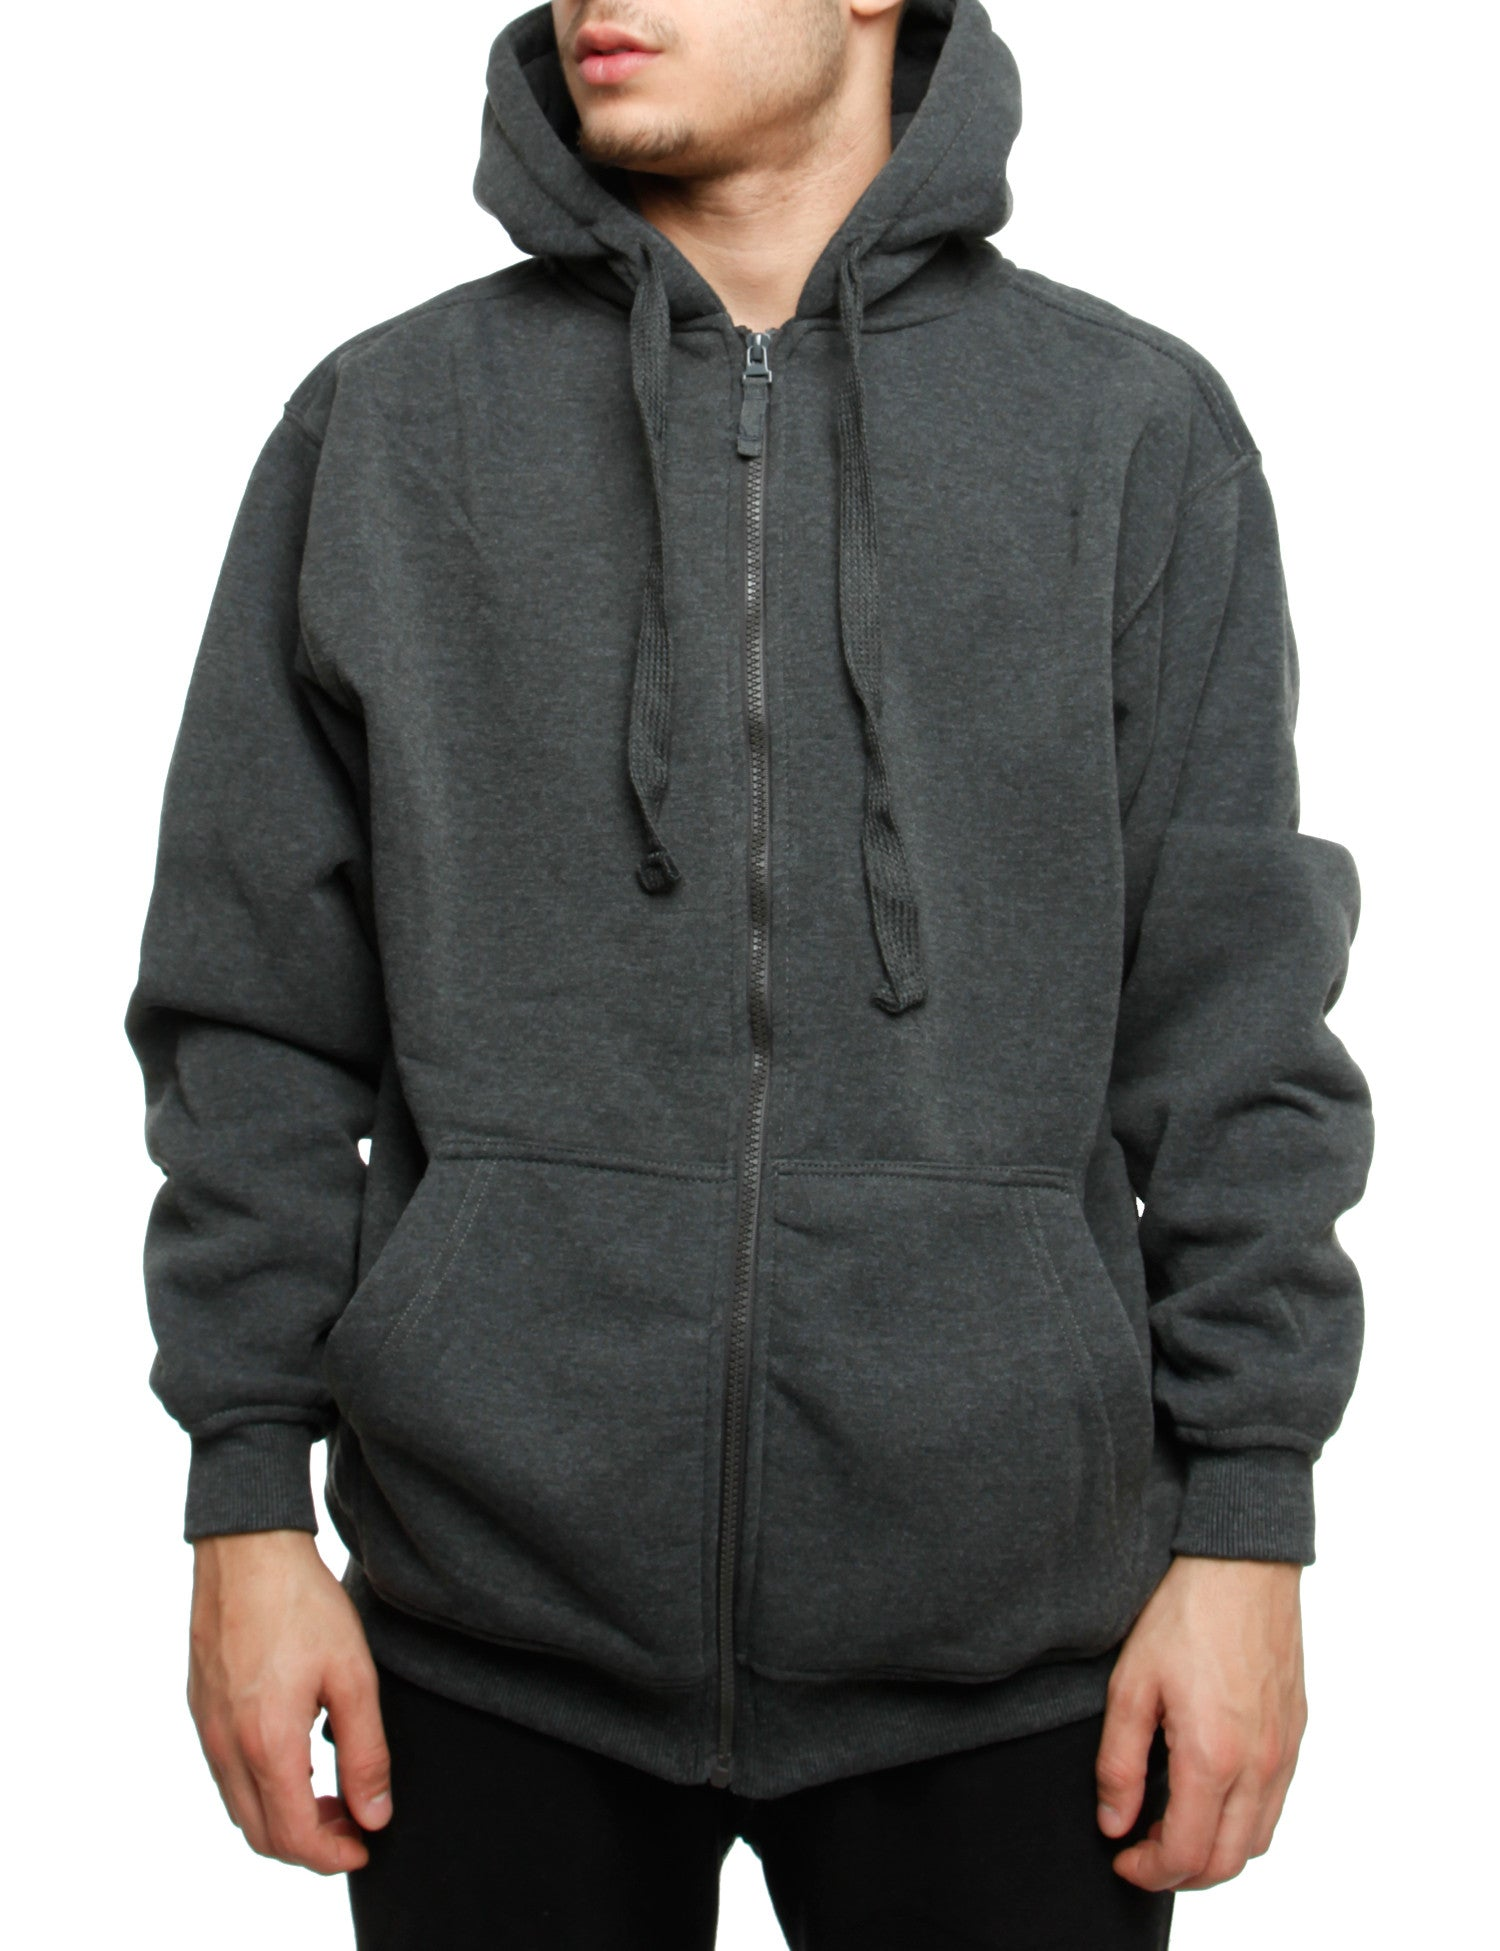 Royal Blue Zip Hoody 4162 Charcoal Grey